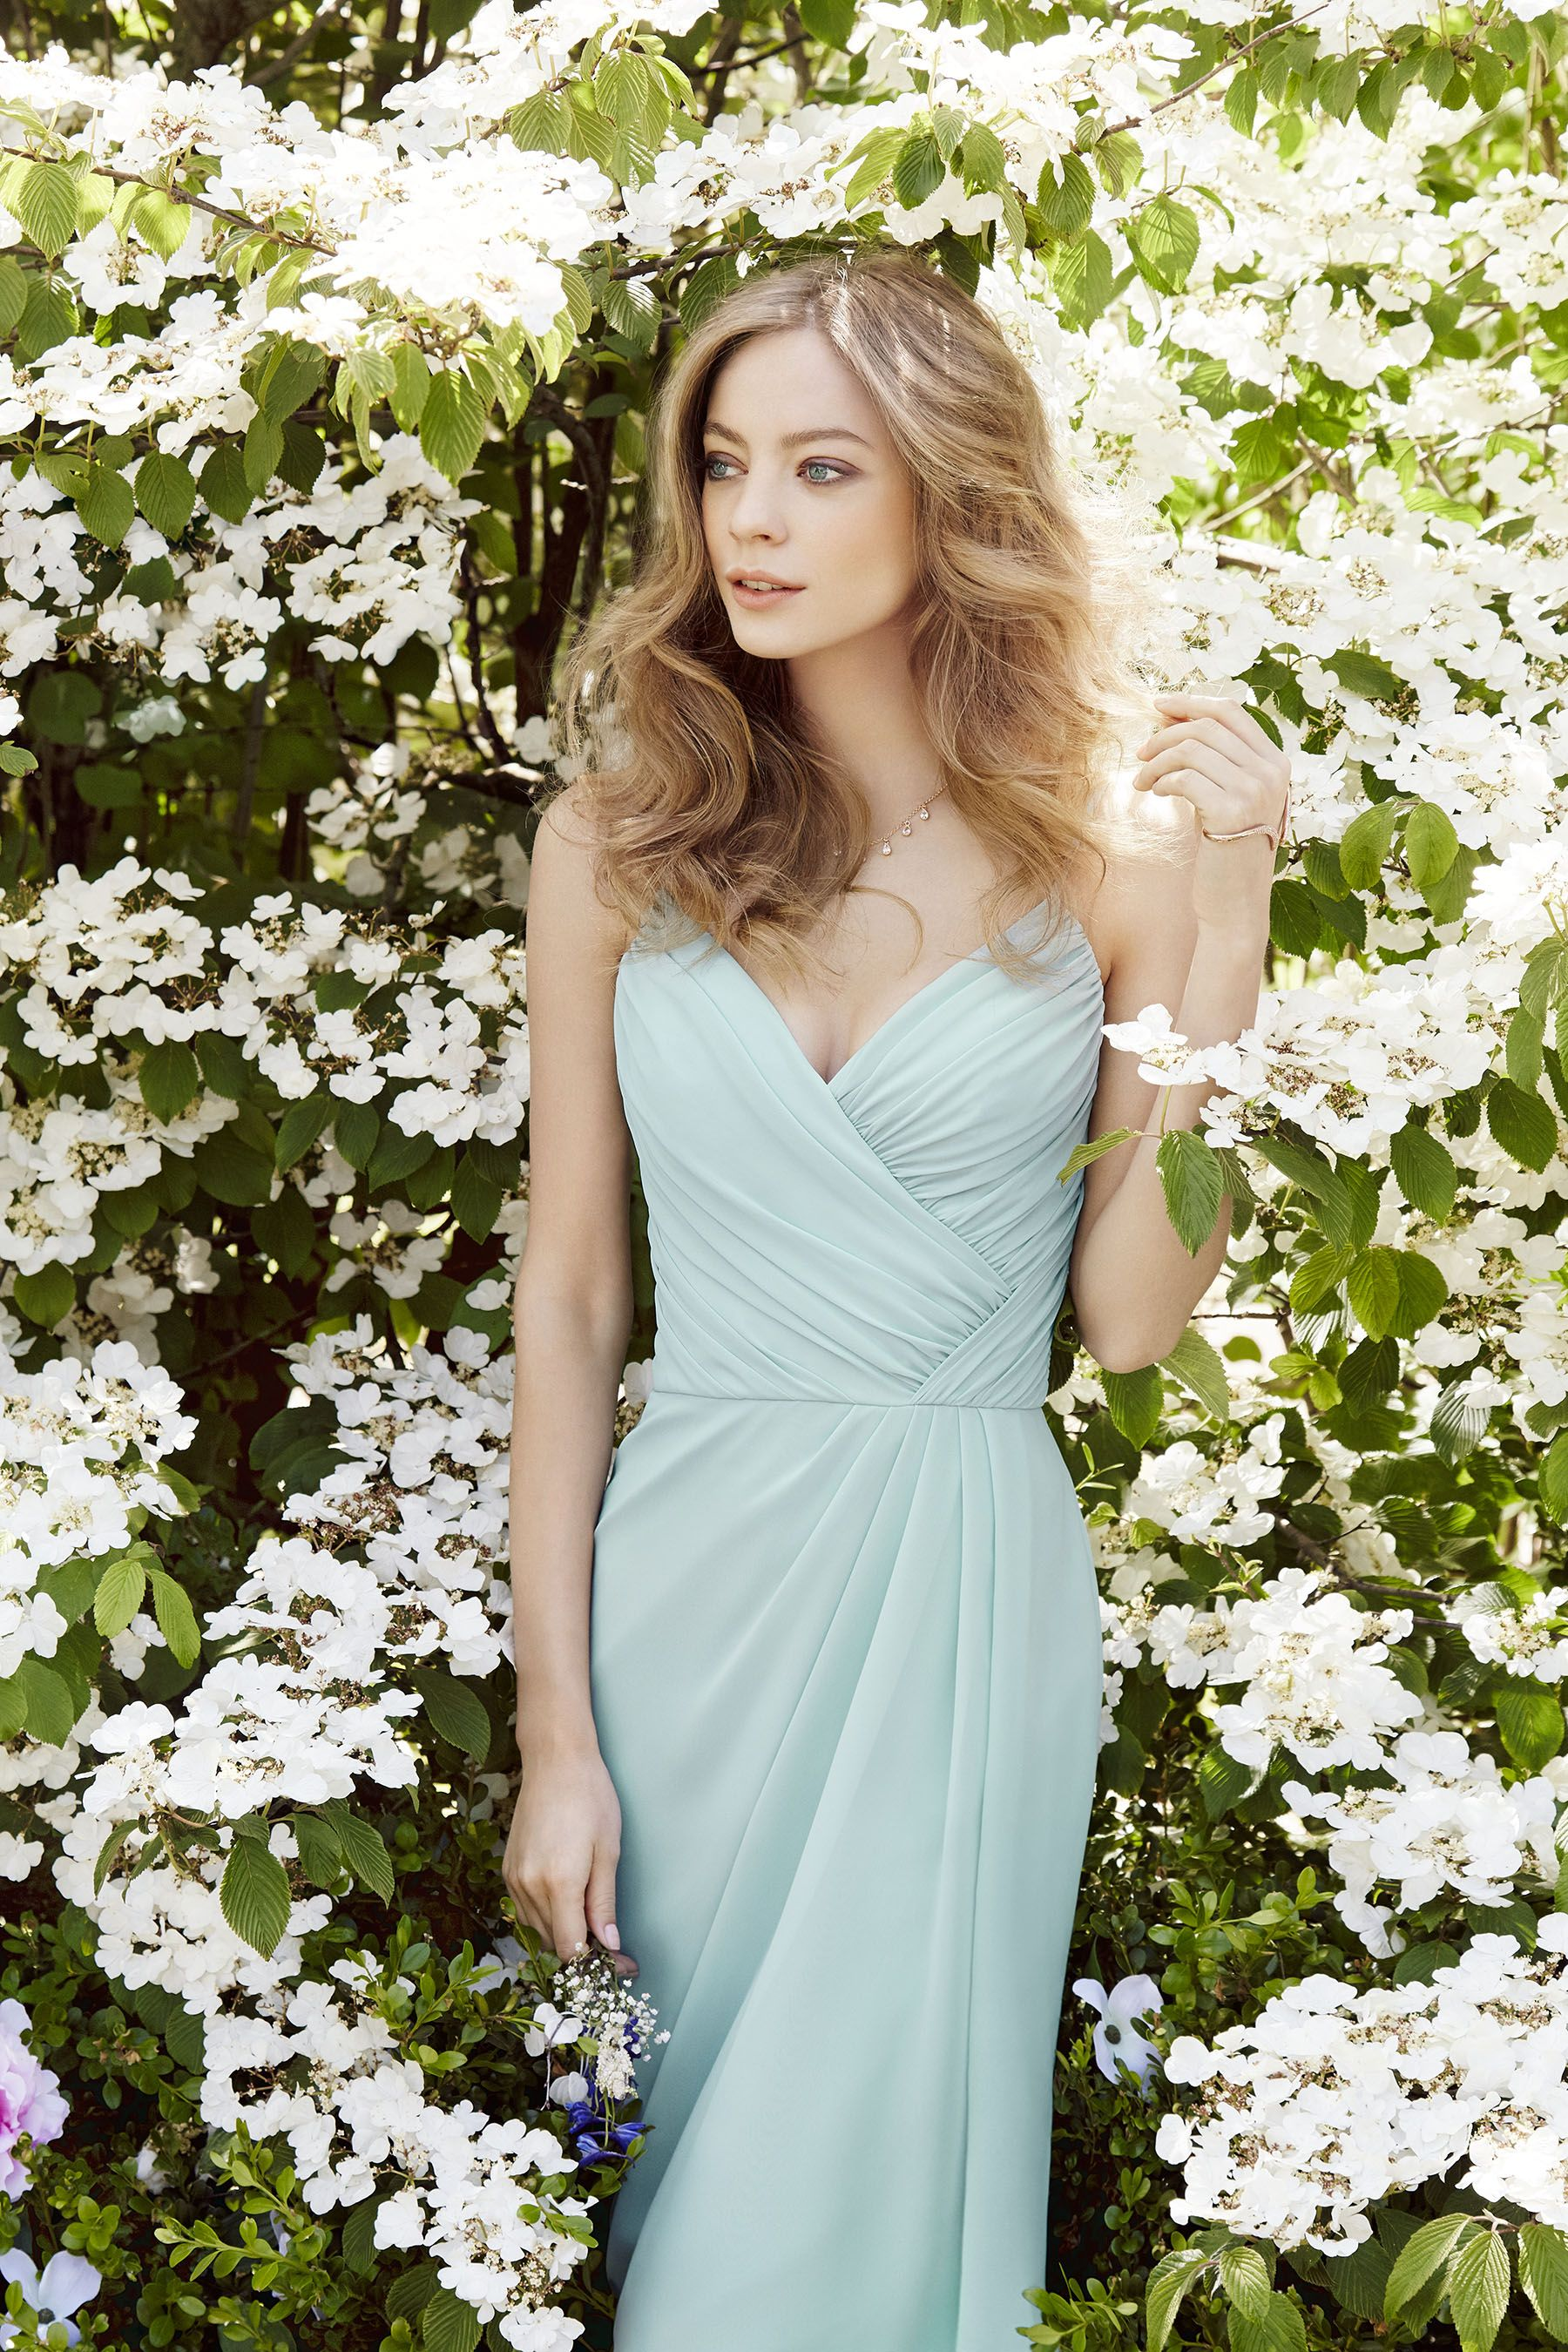 Hayley paige occasions style 5662 ad campaigns pinterest bridesmaid dress 5662 by hayley paige occasions search our photo gallery for pictures of wedding bridesmaids by hayley paige occasions ombrellifo Images